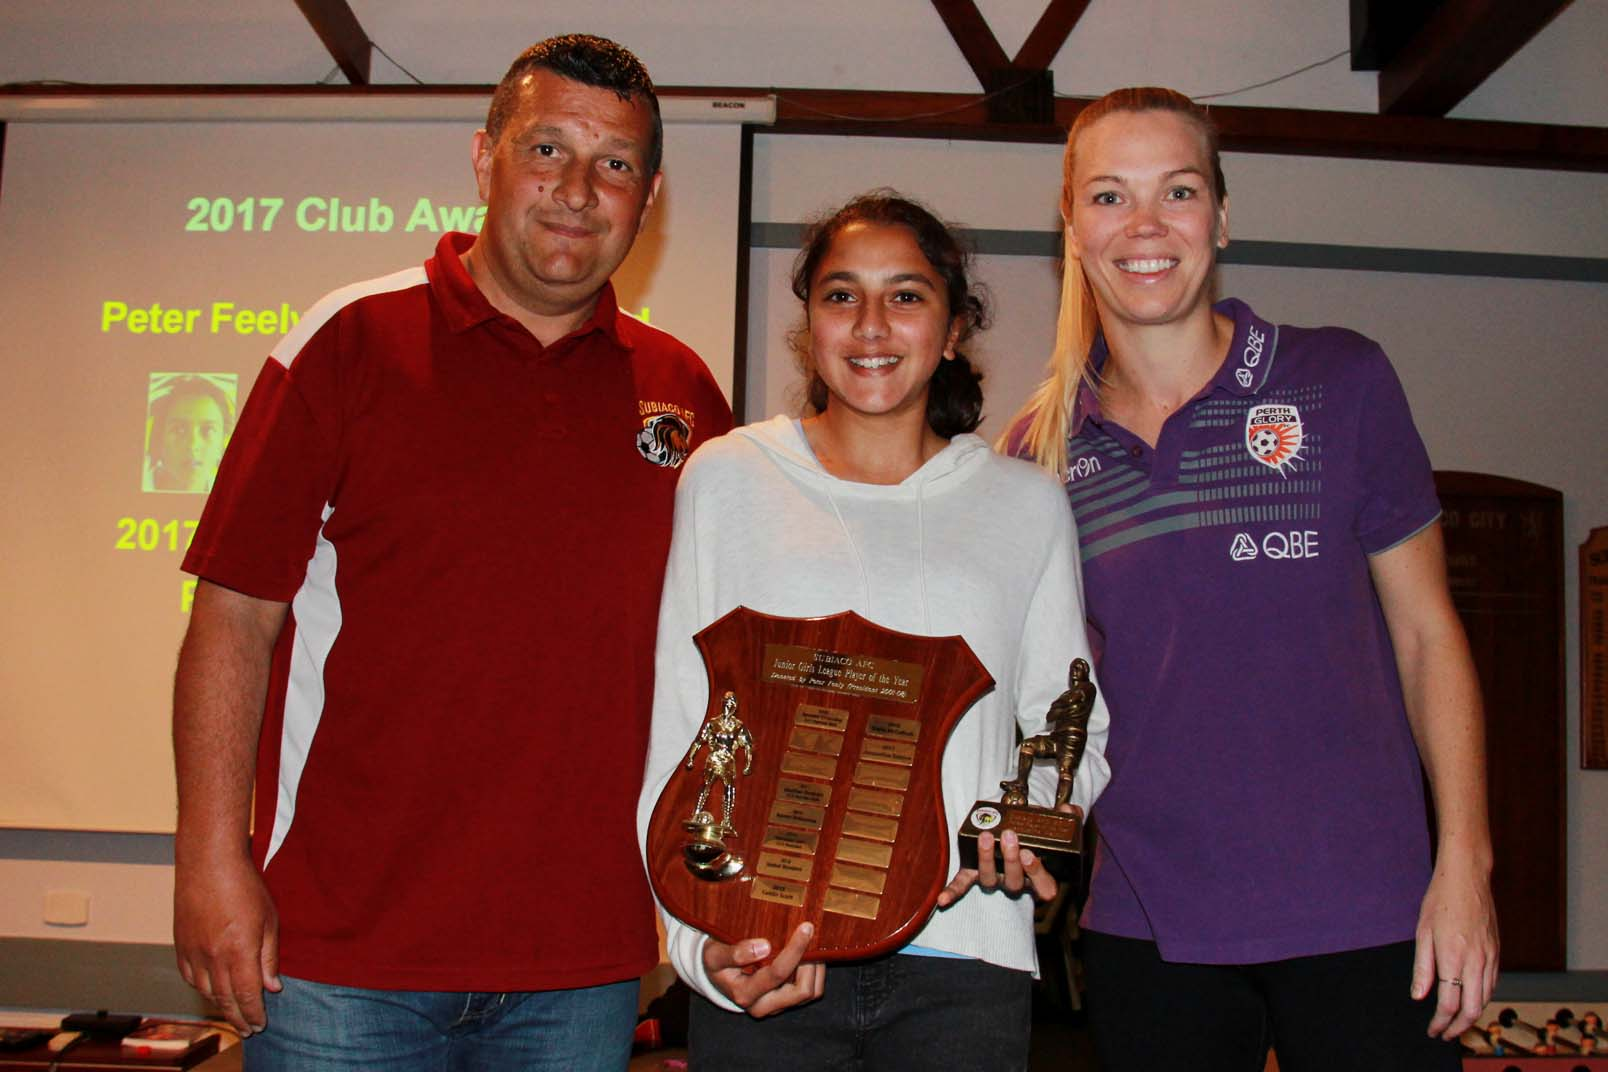 Juniors Girls League Player of the Year